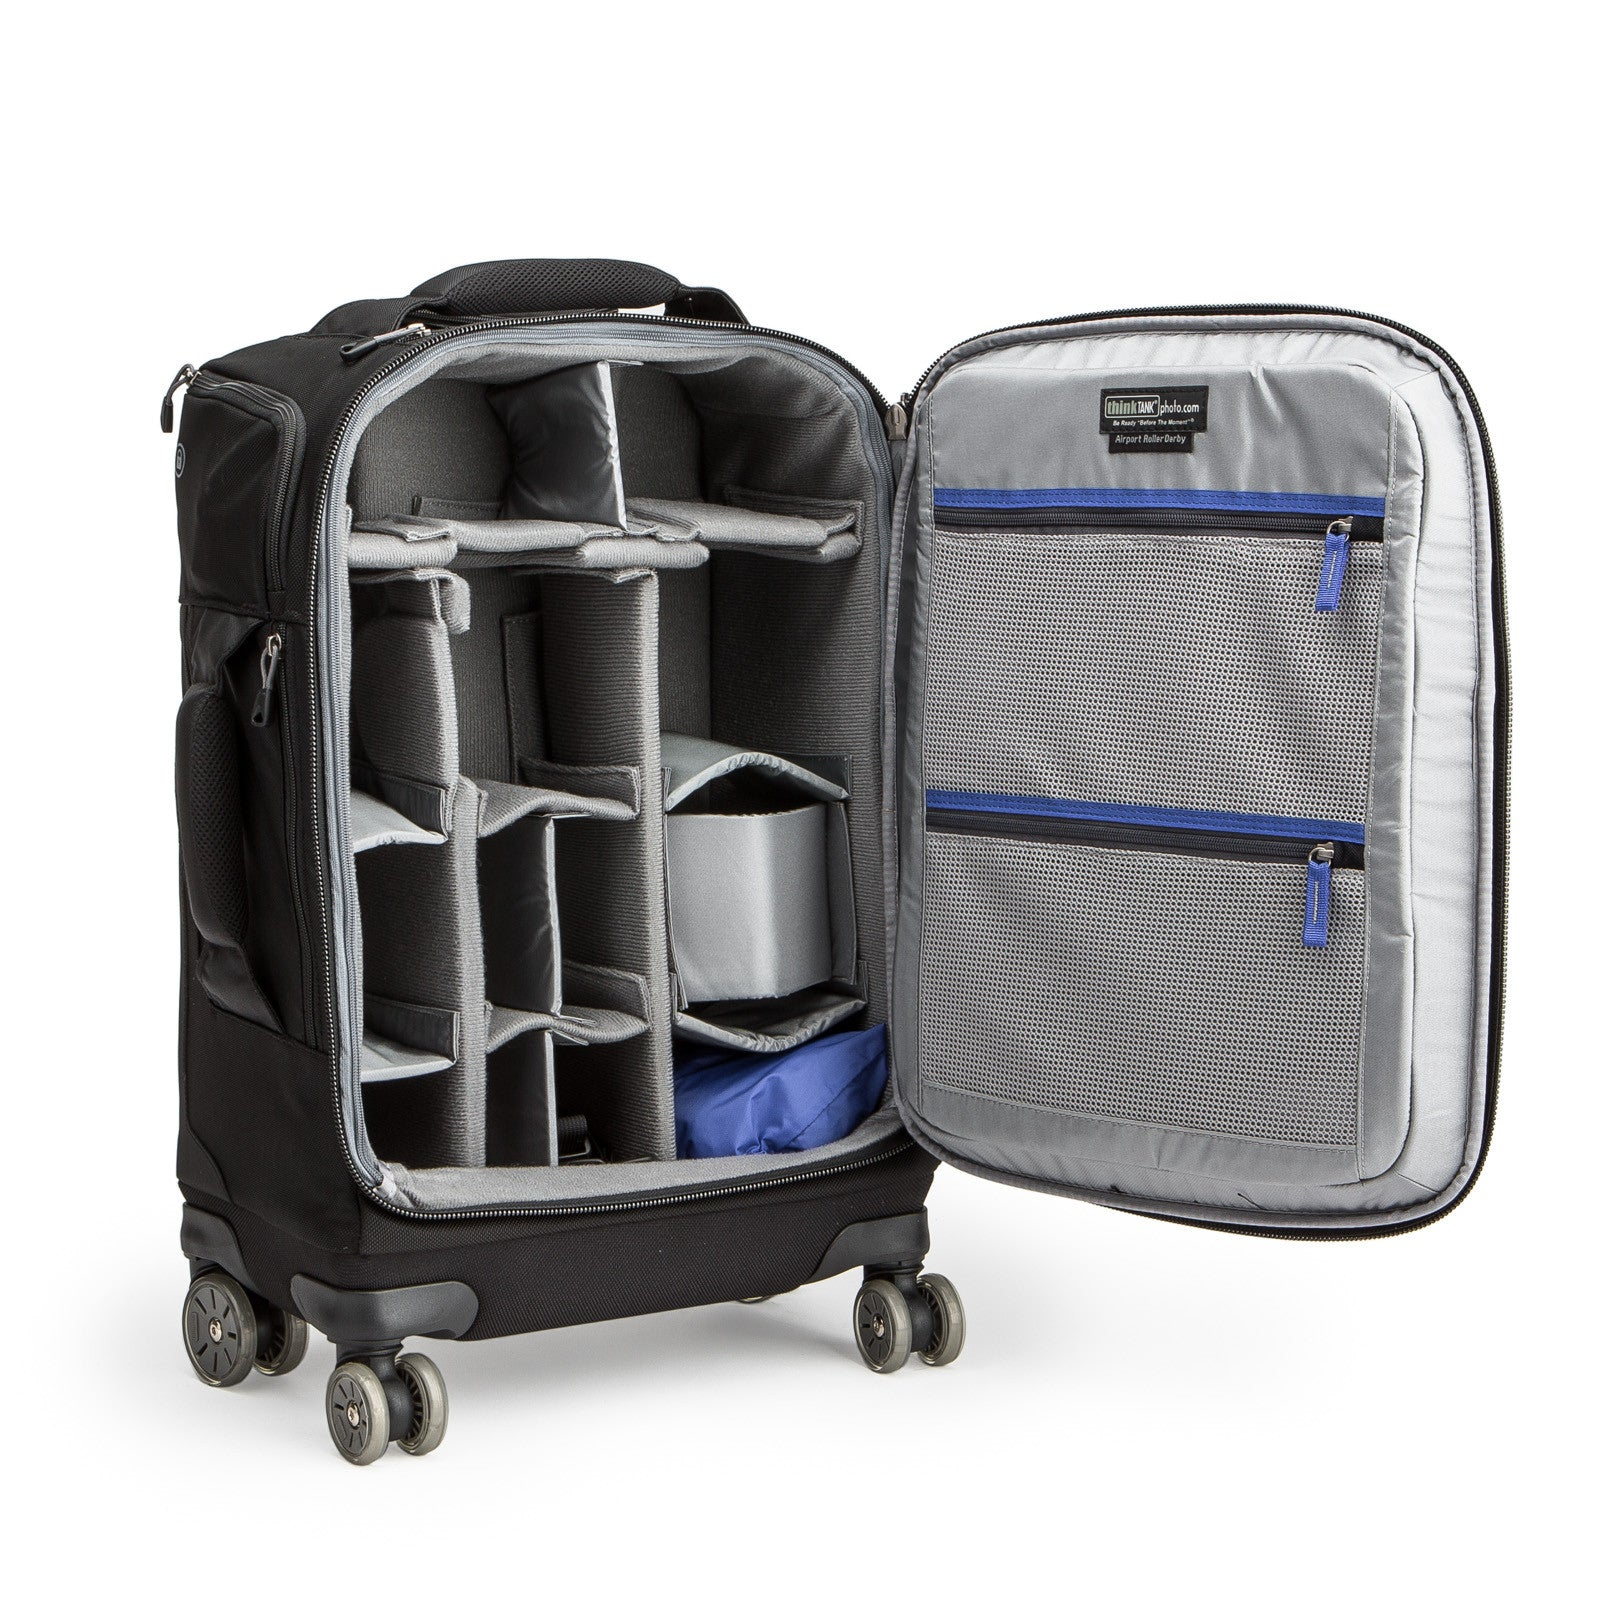 Airport Roller Derby Rolling Camera Bags For Airlines